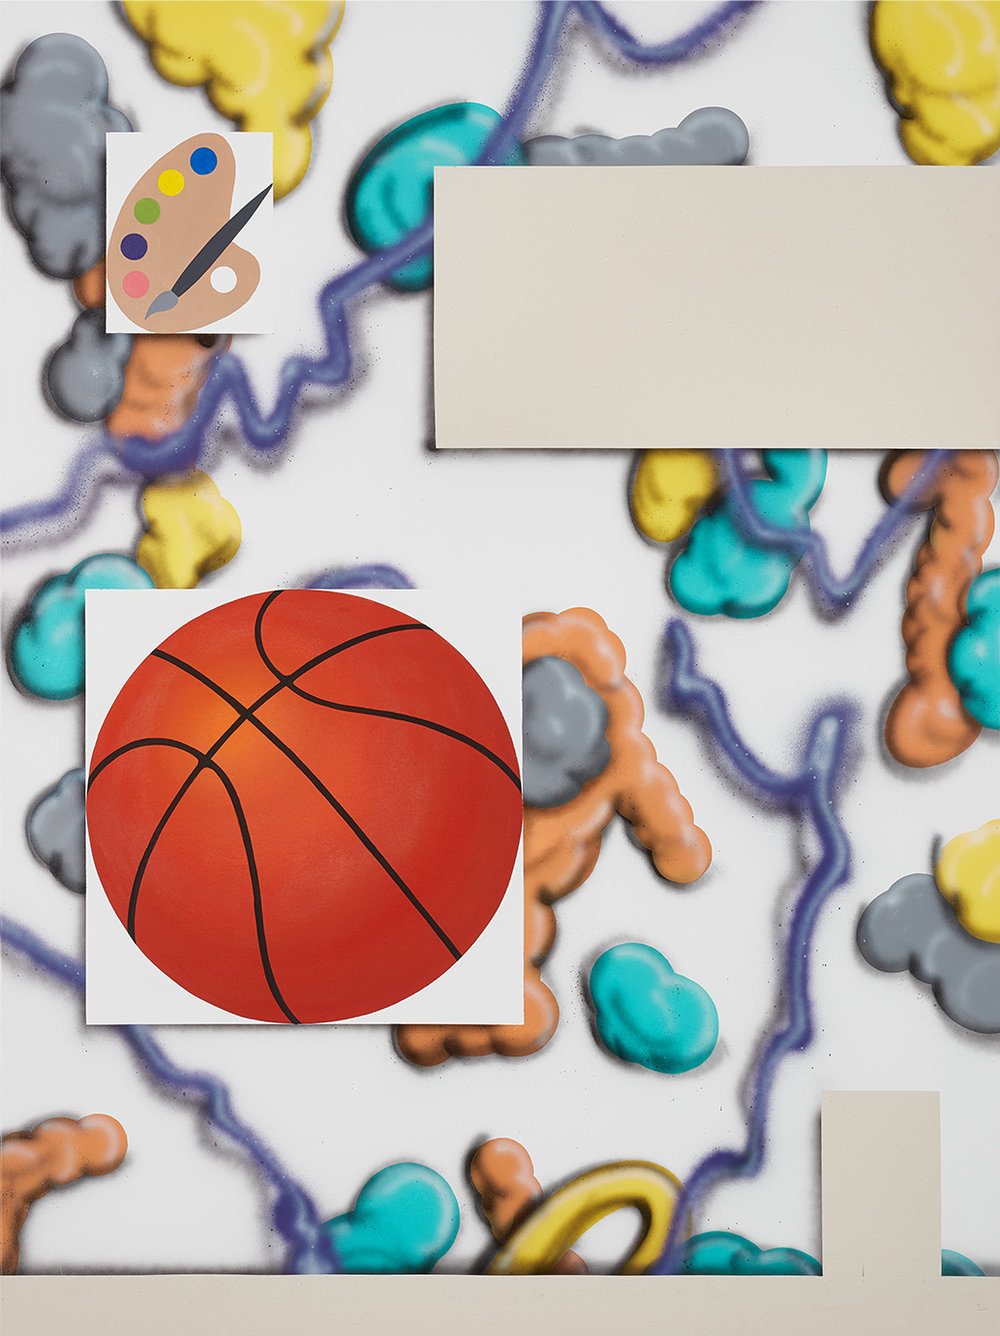 Sportlich  2017, mixed media, 160 x 120 cm